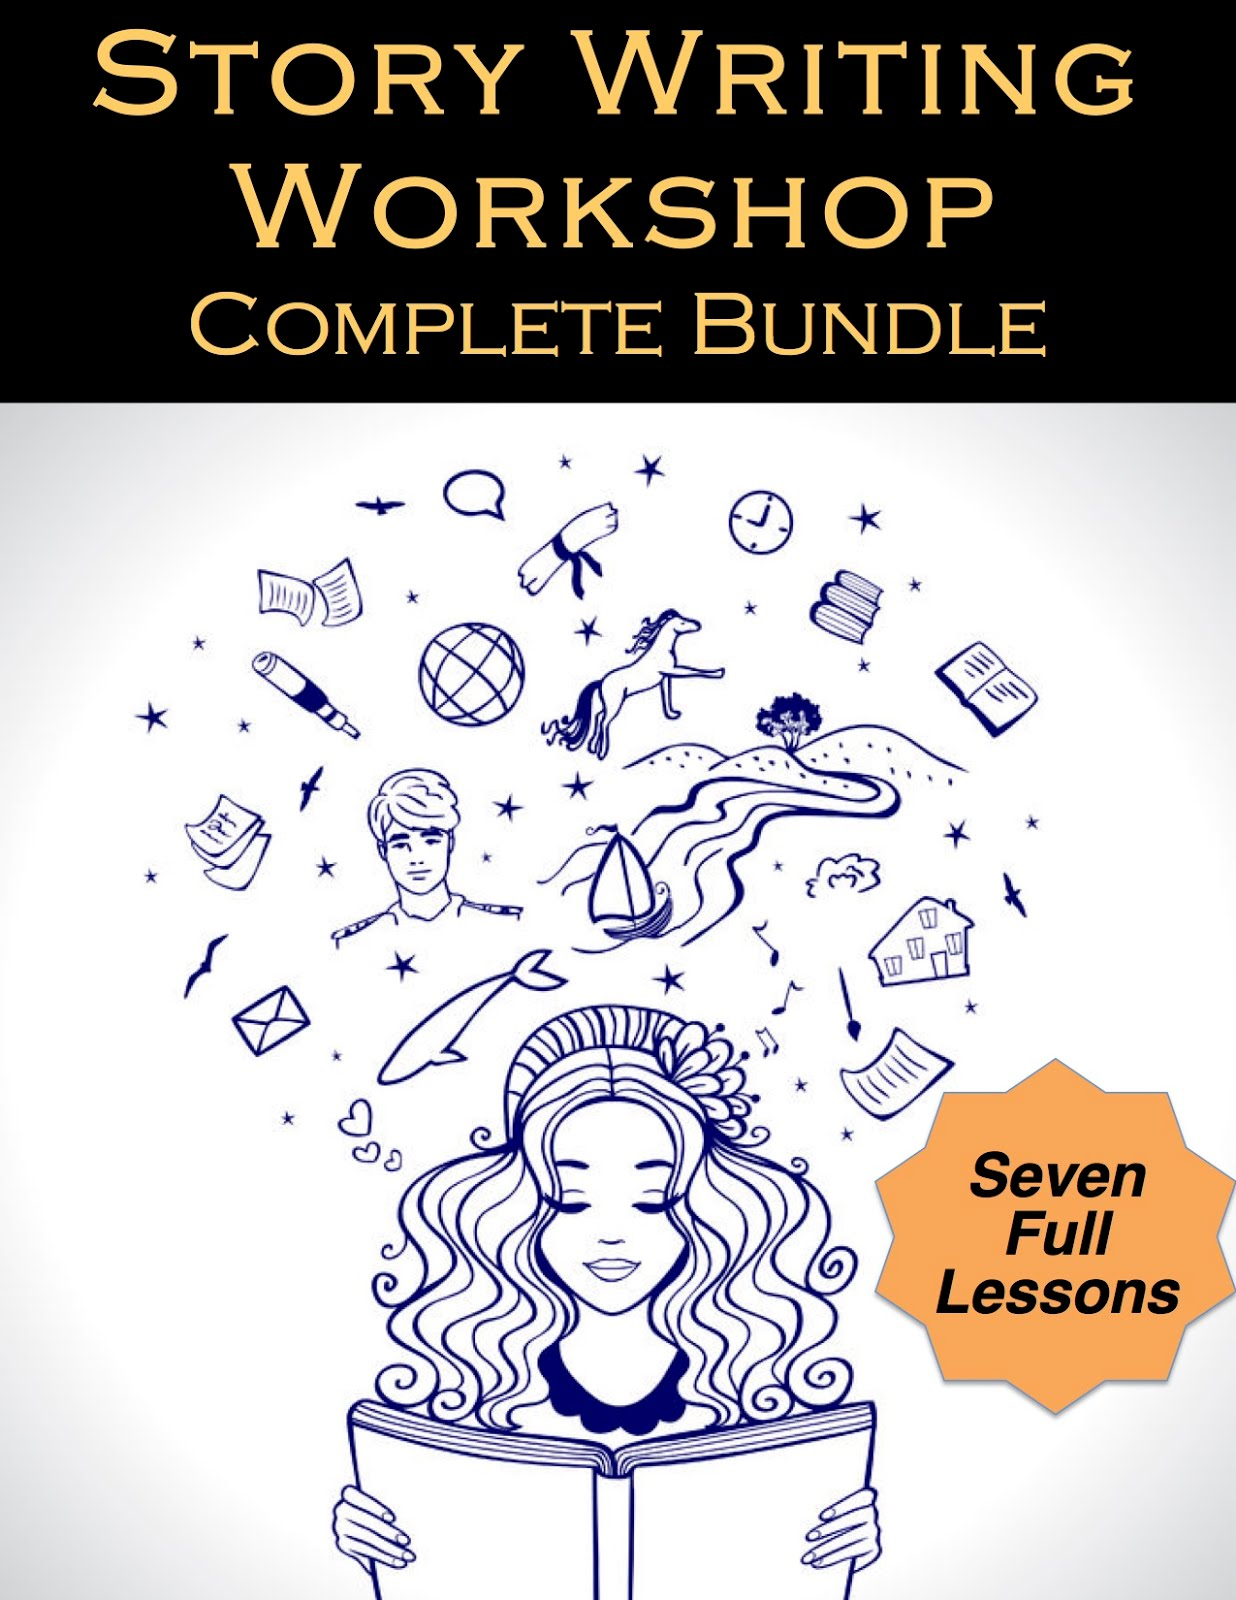 Story Writing Workshop